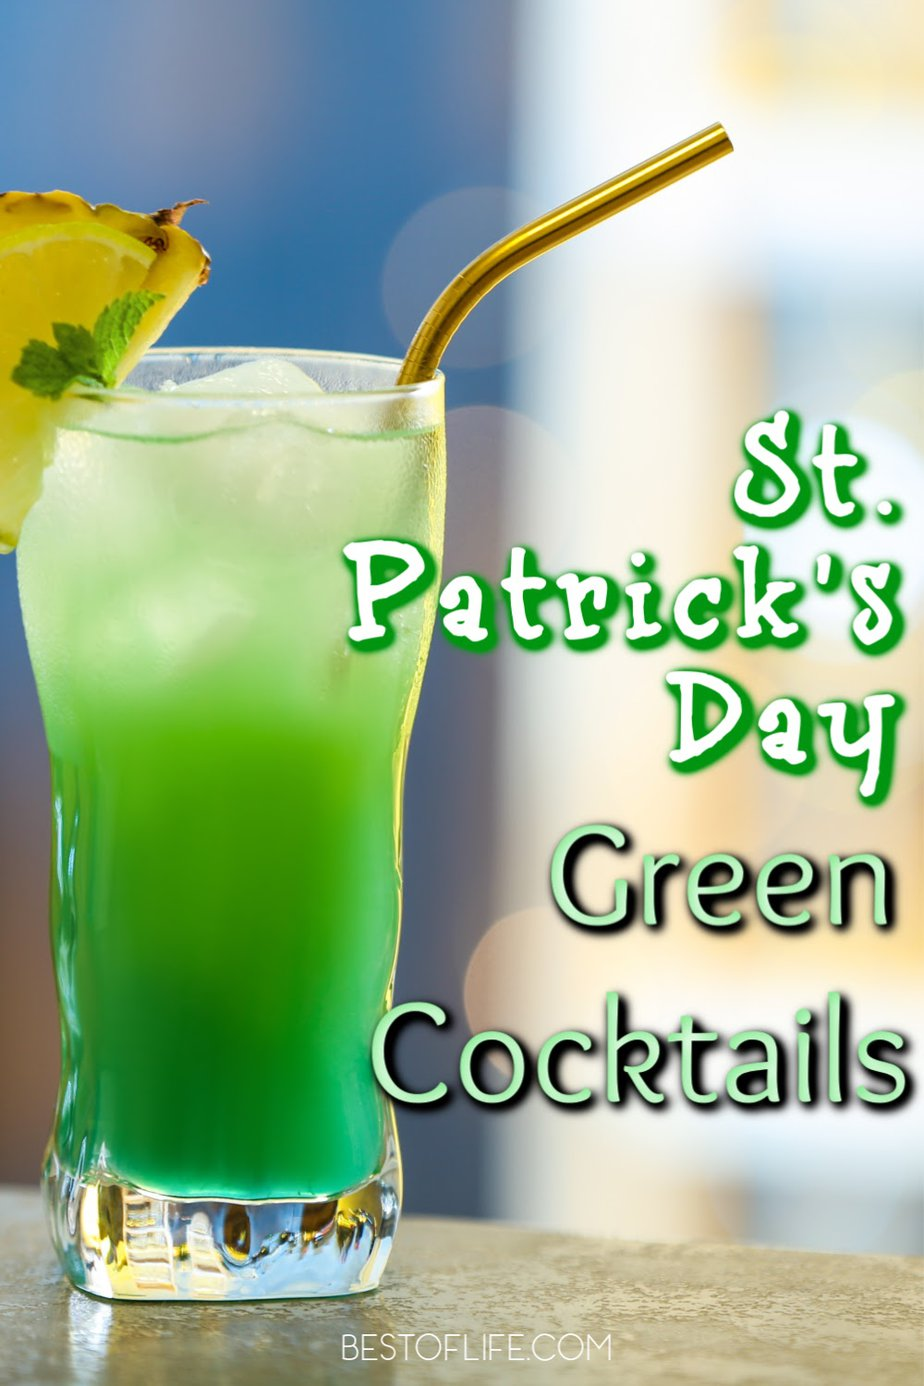 Enjoy these festive green cocktails for St Patricks Day as you celebrate the Irish traditions of the holiday with friends and family. St Patricks Day Cocktails | Irish Cocktails | Green Drinks | St Patricks Day Recipes | Party Food | Party Drink Recipes #stpatricksday #cocktails